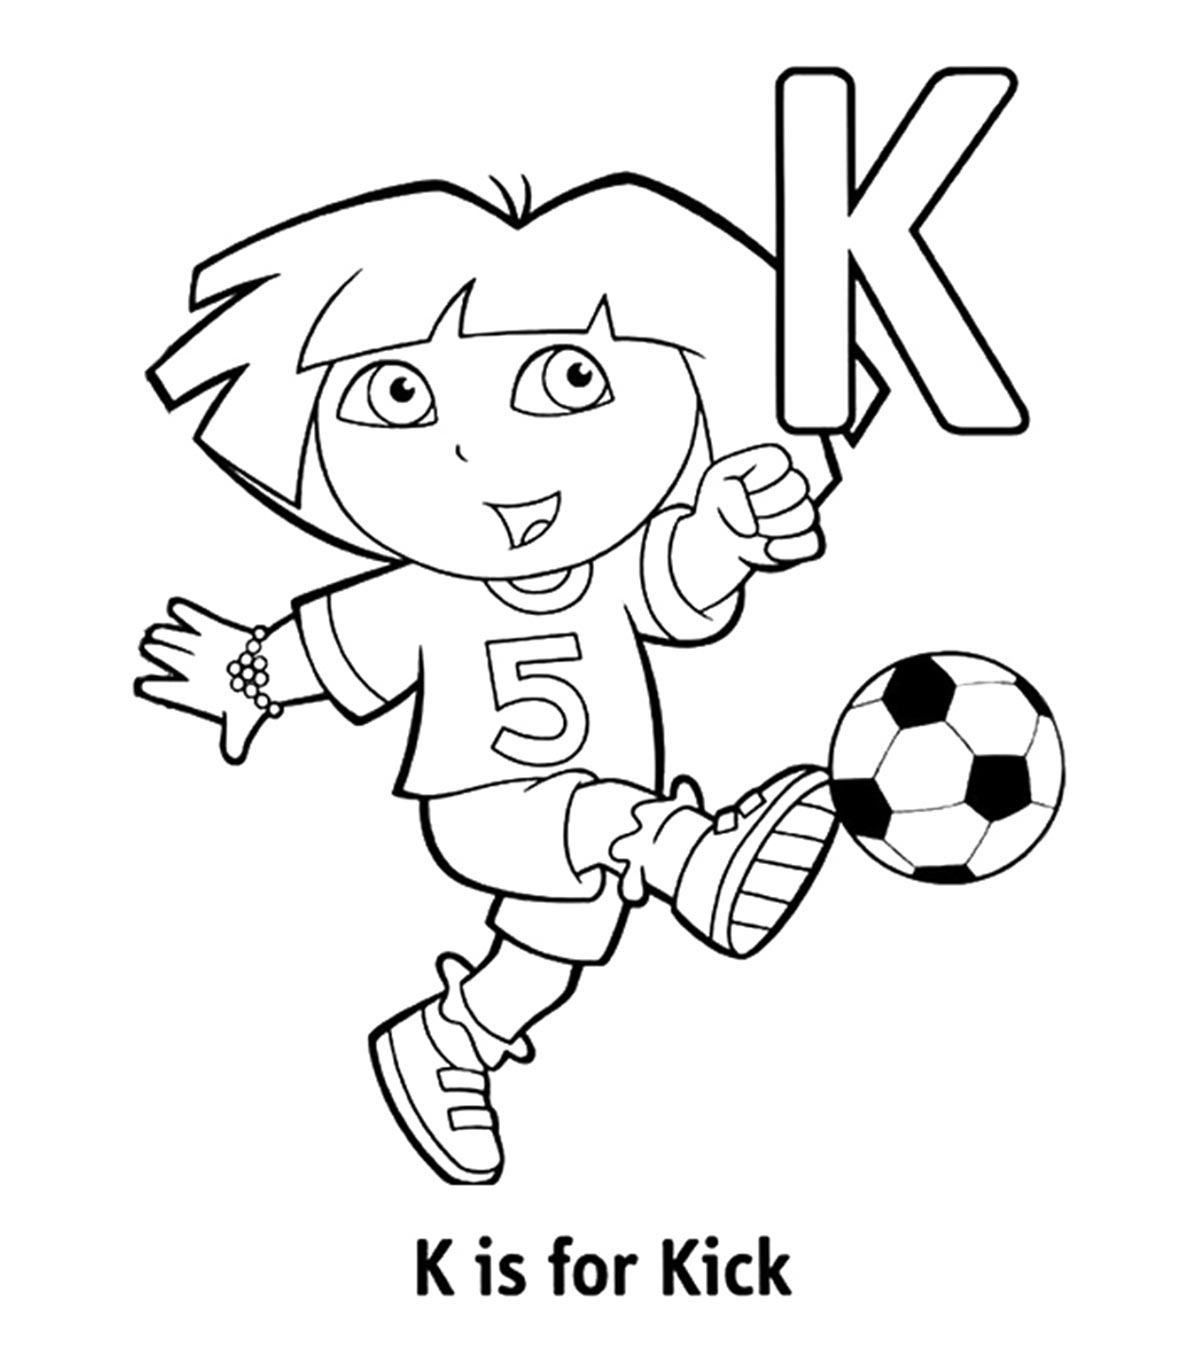 Top 10 Letter K Coloring Pages Your Toddler Will Love To